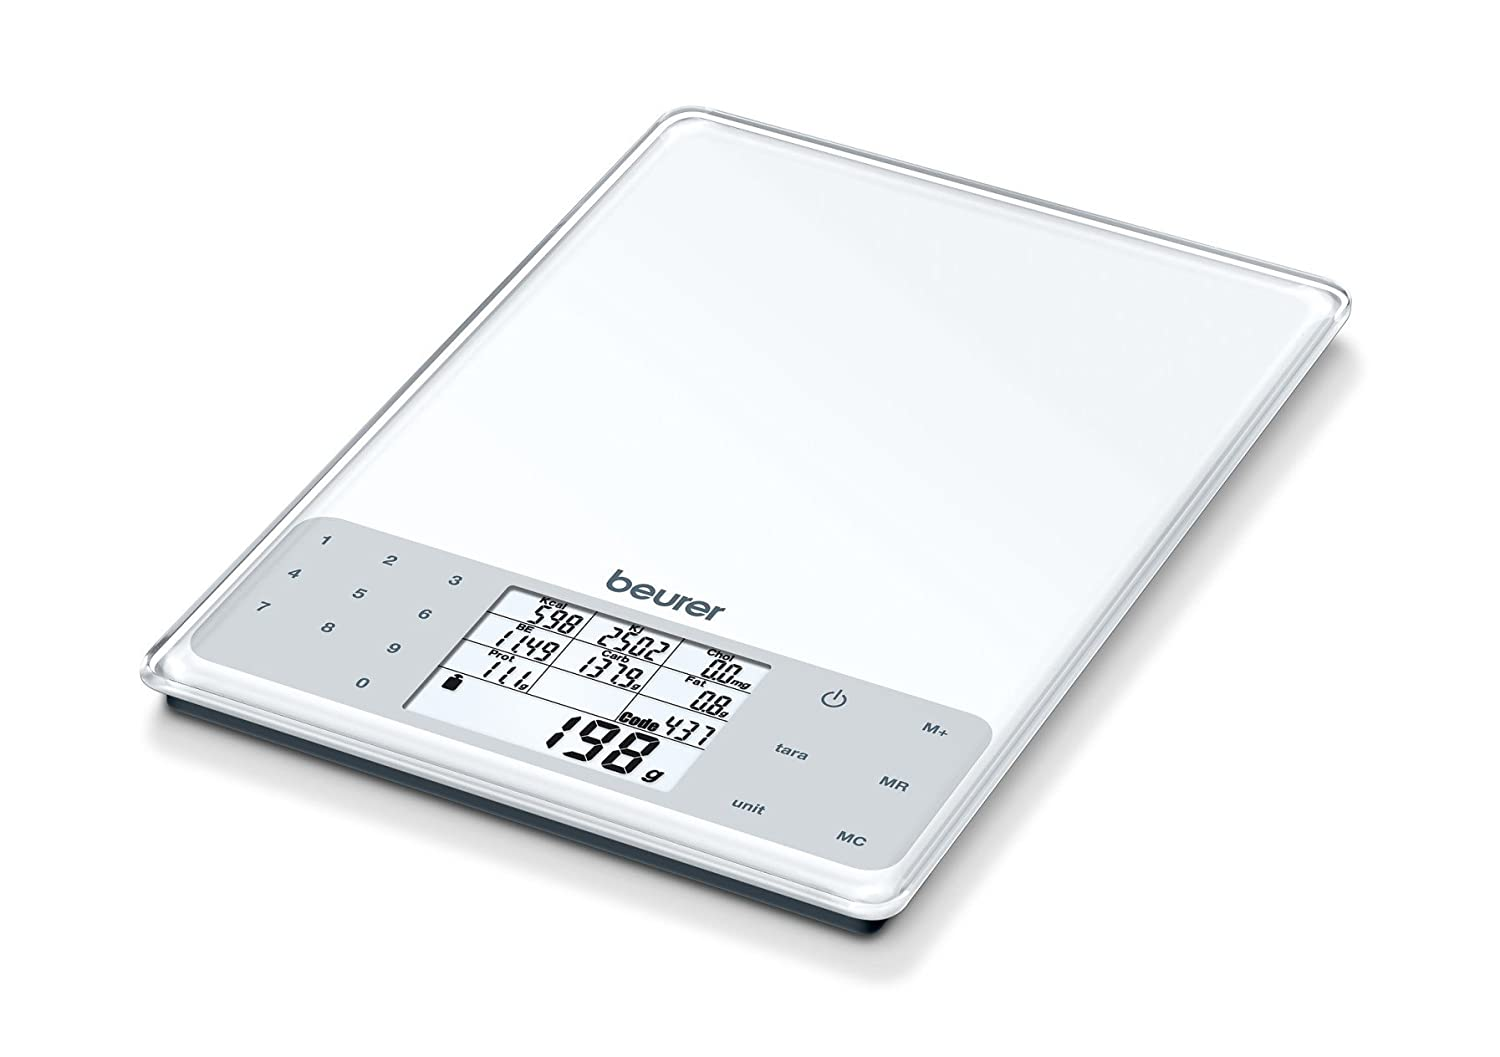 Beurer DS61 Nutritional Analysis Scale, White 709.05 70905 1